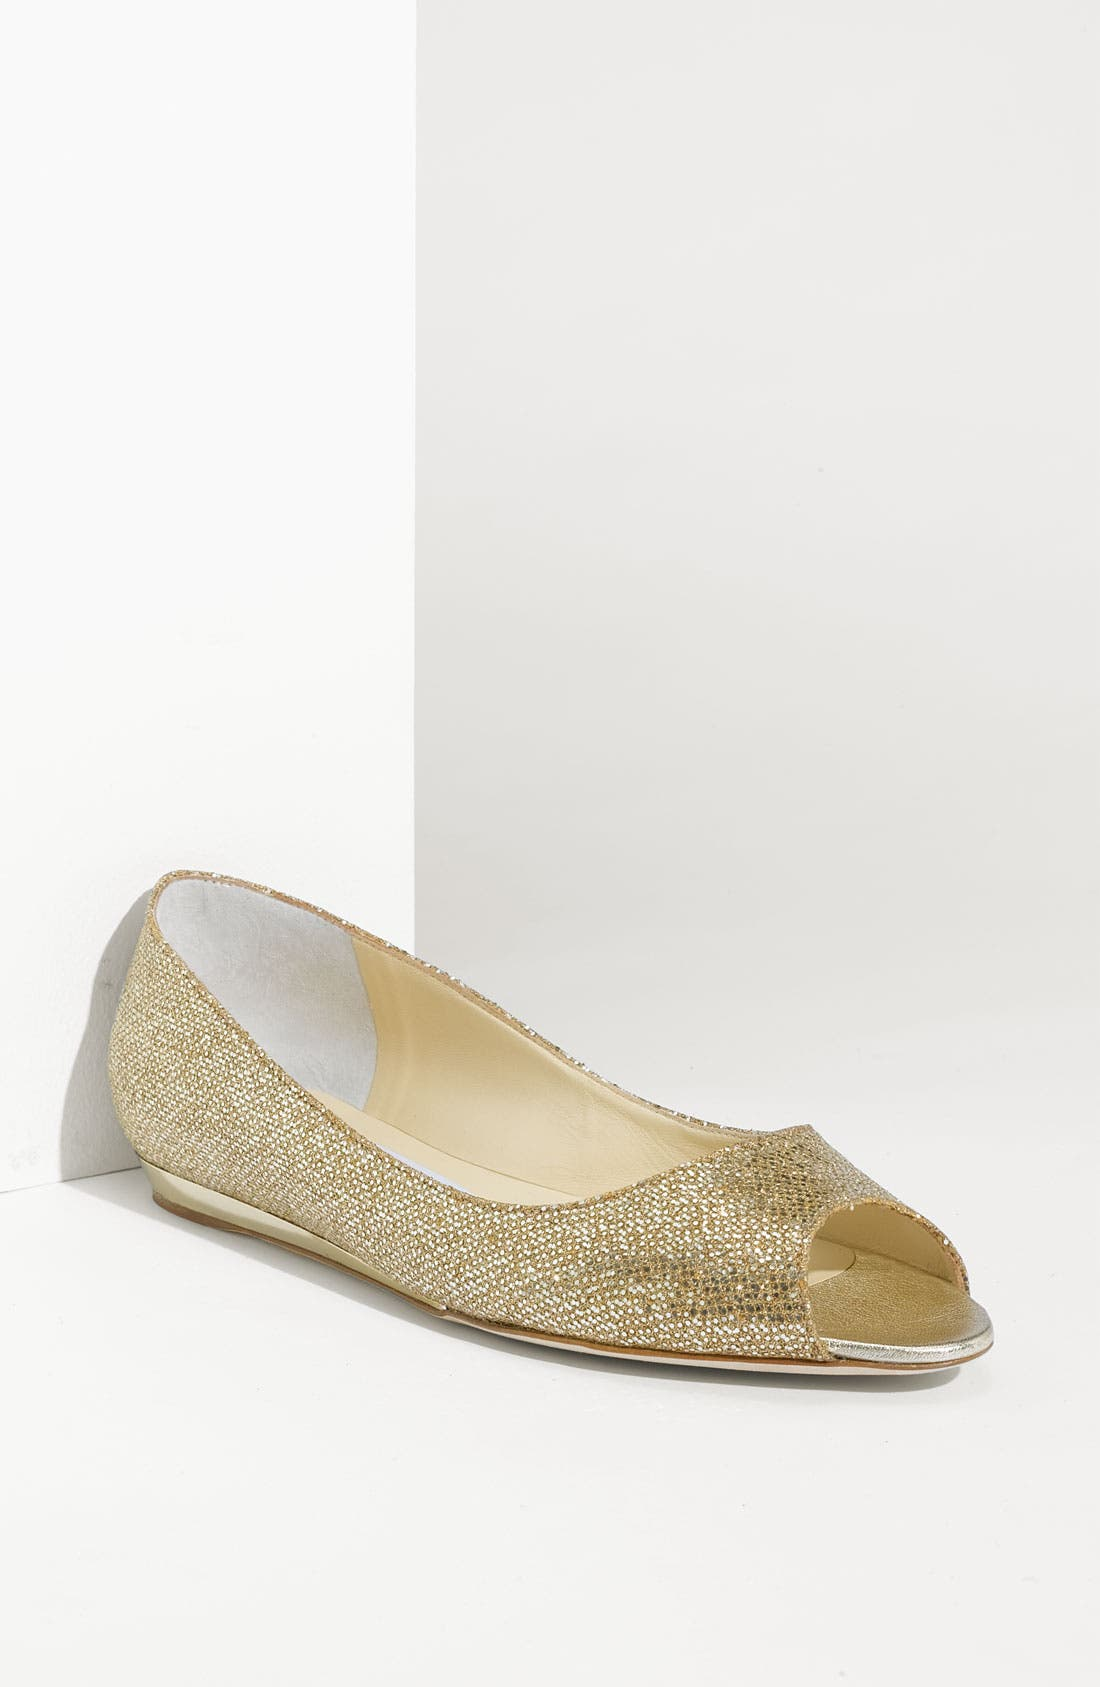 Main Image - Jimmy Choo 'Beck' Wedge Flat